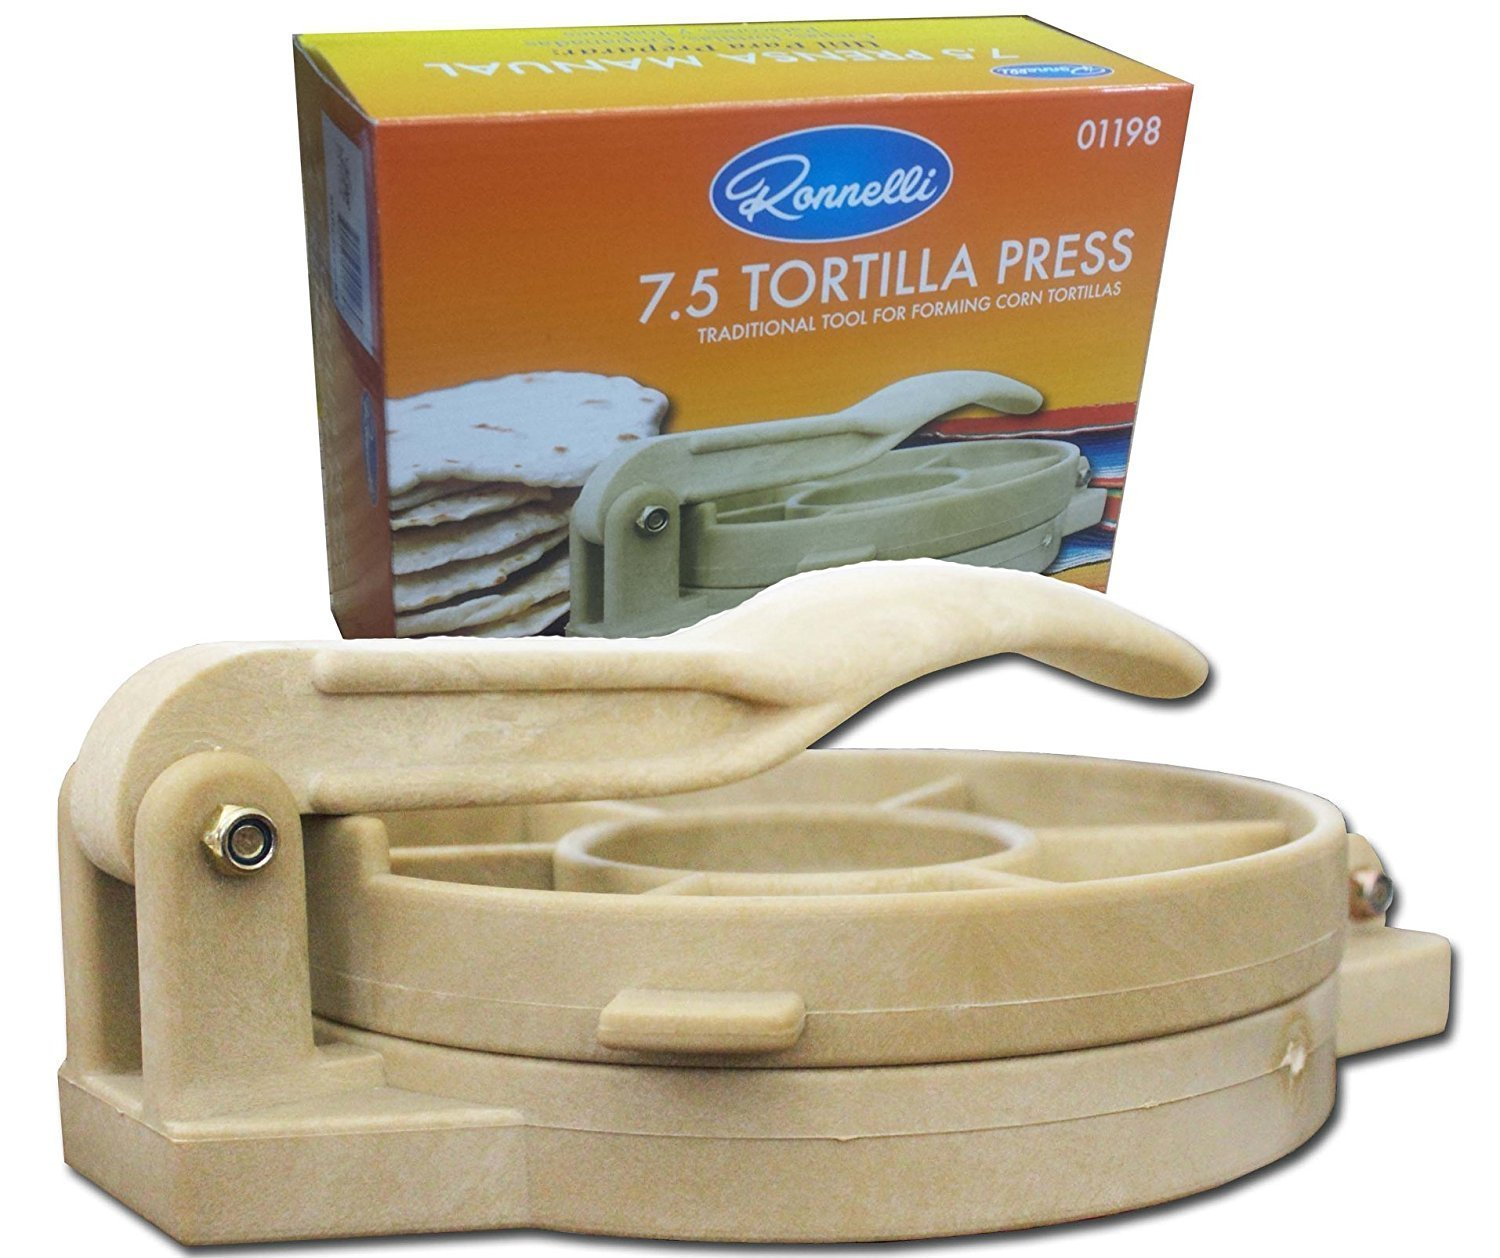 7.5 inches Tortilla Press Heavy Duty Plastic Authentic Tortilla Maker Corn Tortilla Machine by Ronelli